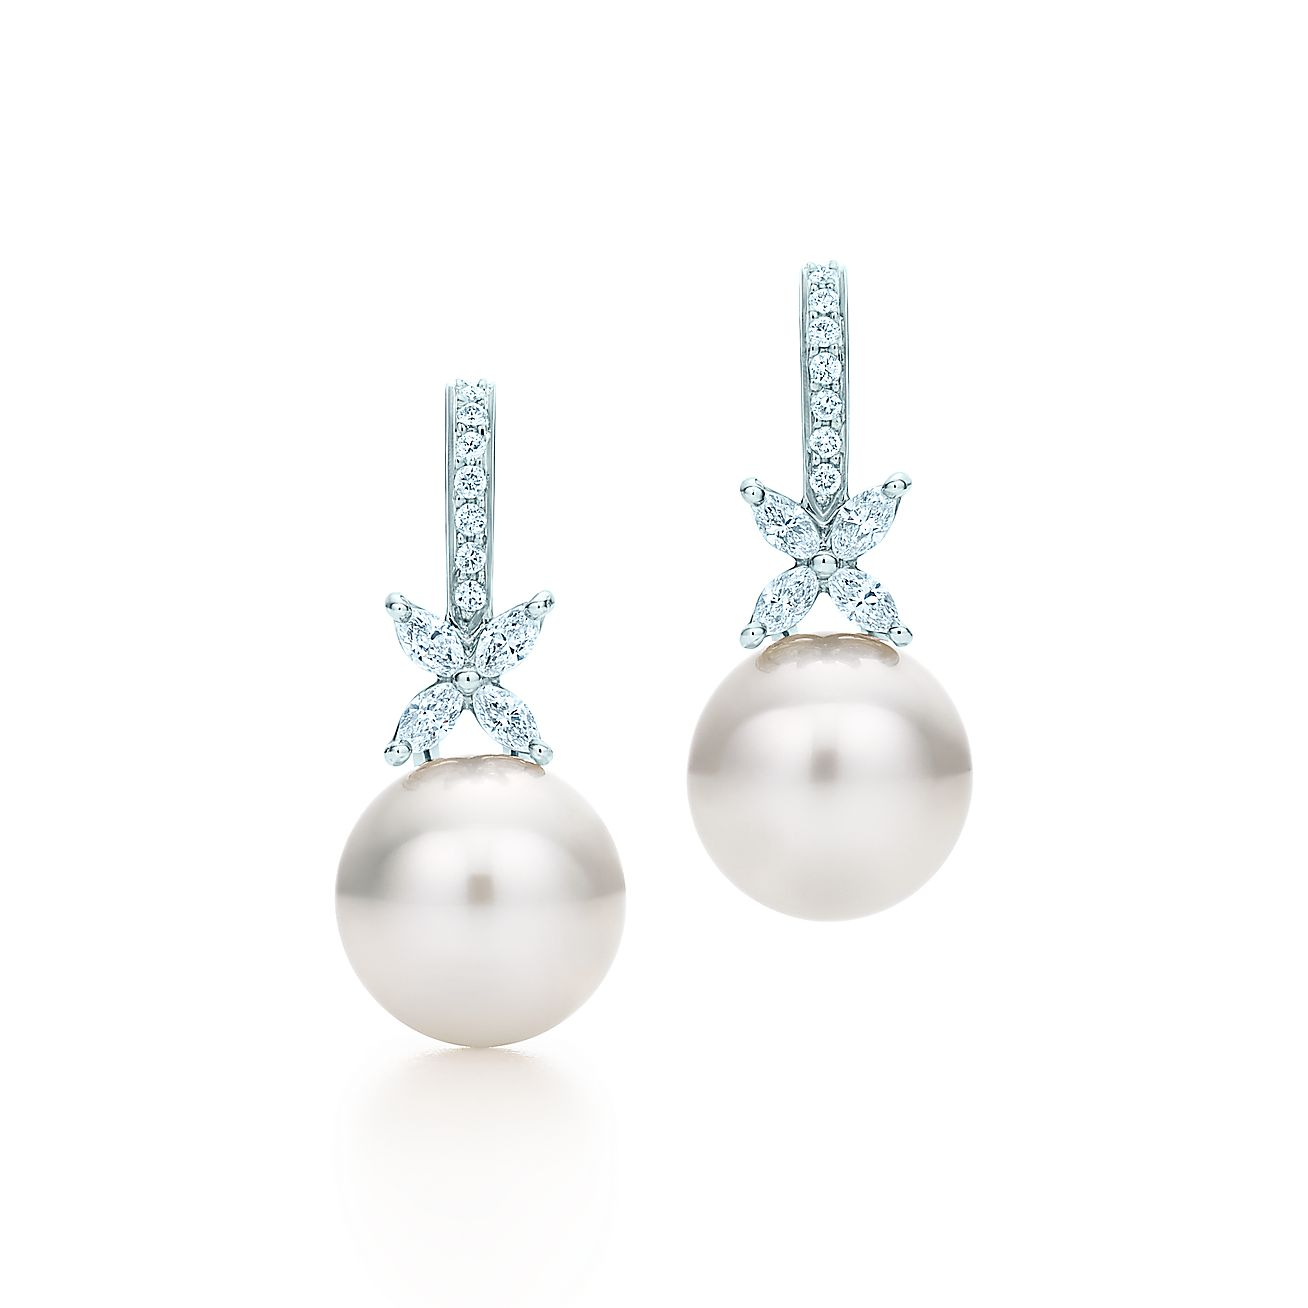 Tiffany Victoria® Earrings In Platinum With South Sea Pearls And Diamonds   Tiffany & Co